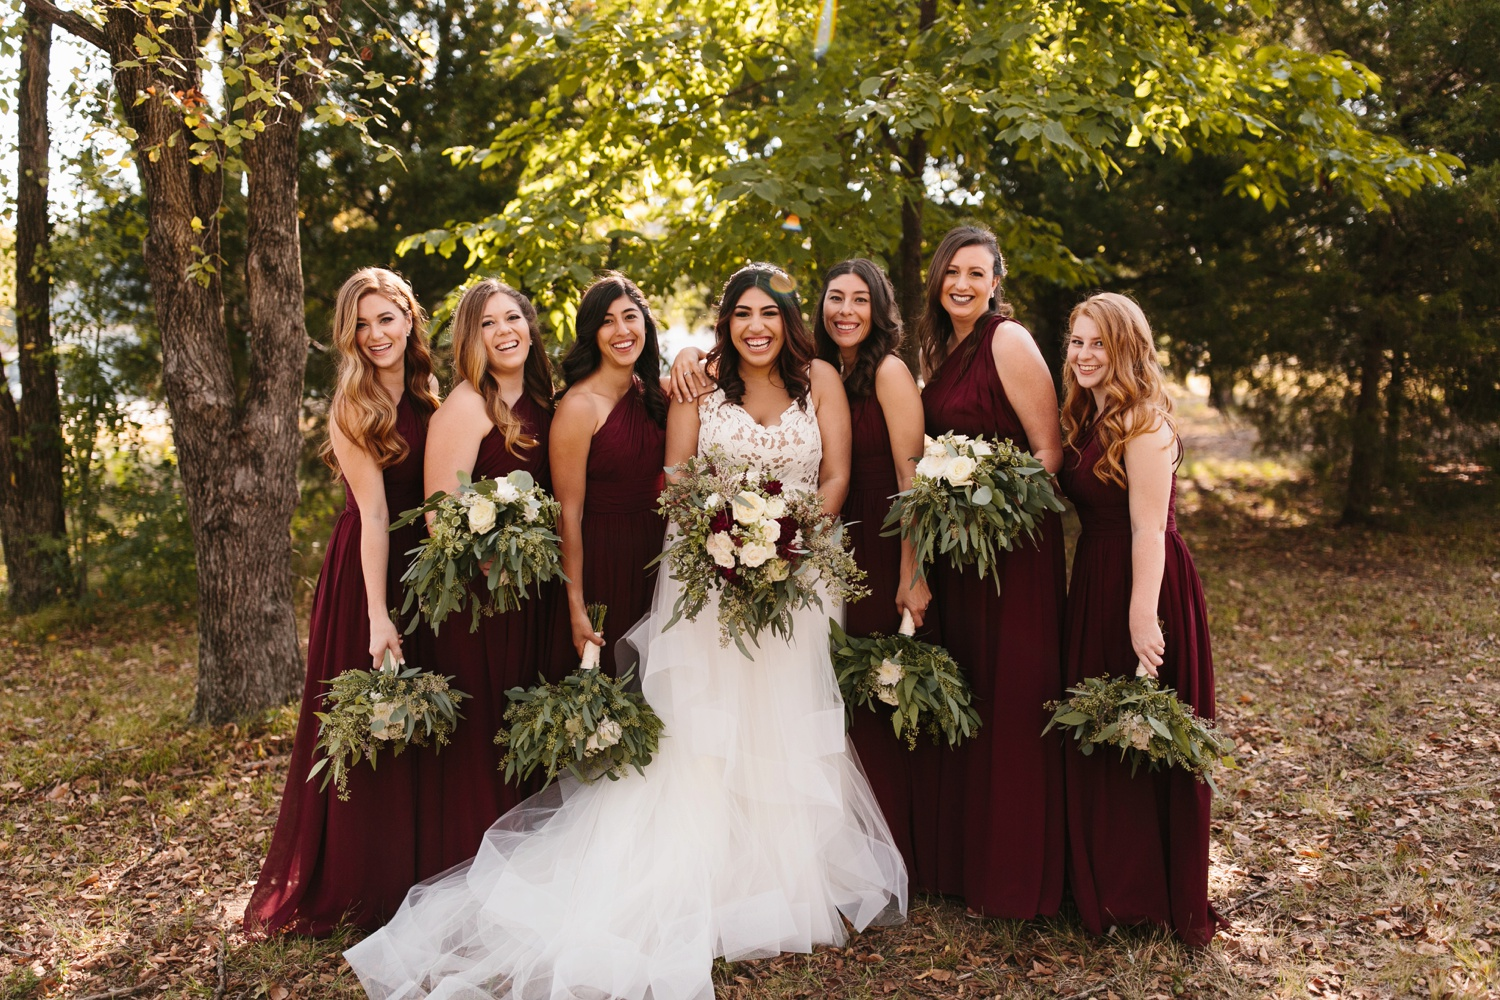 Grant + Lysette | a vibrant, deep burgundy and navy, and mixed metals wedding at Hidden Pines Chapel by North Texas Wedding Photographer Rachel Meagan Photography 038